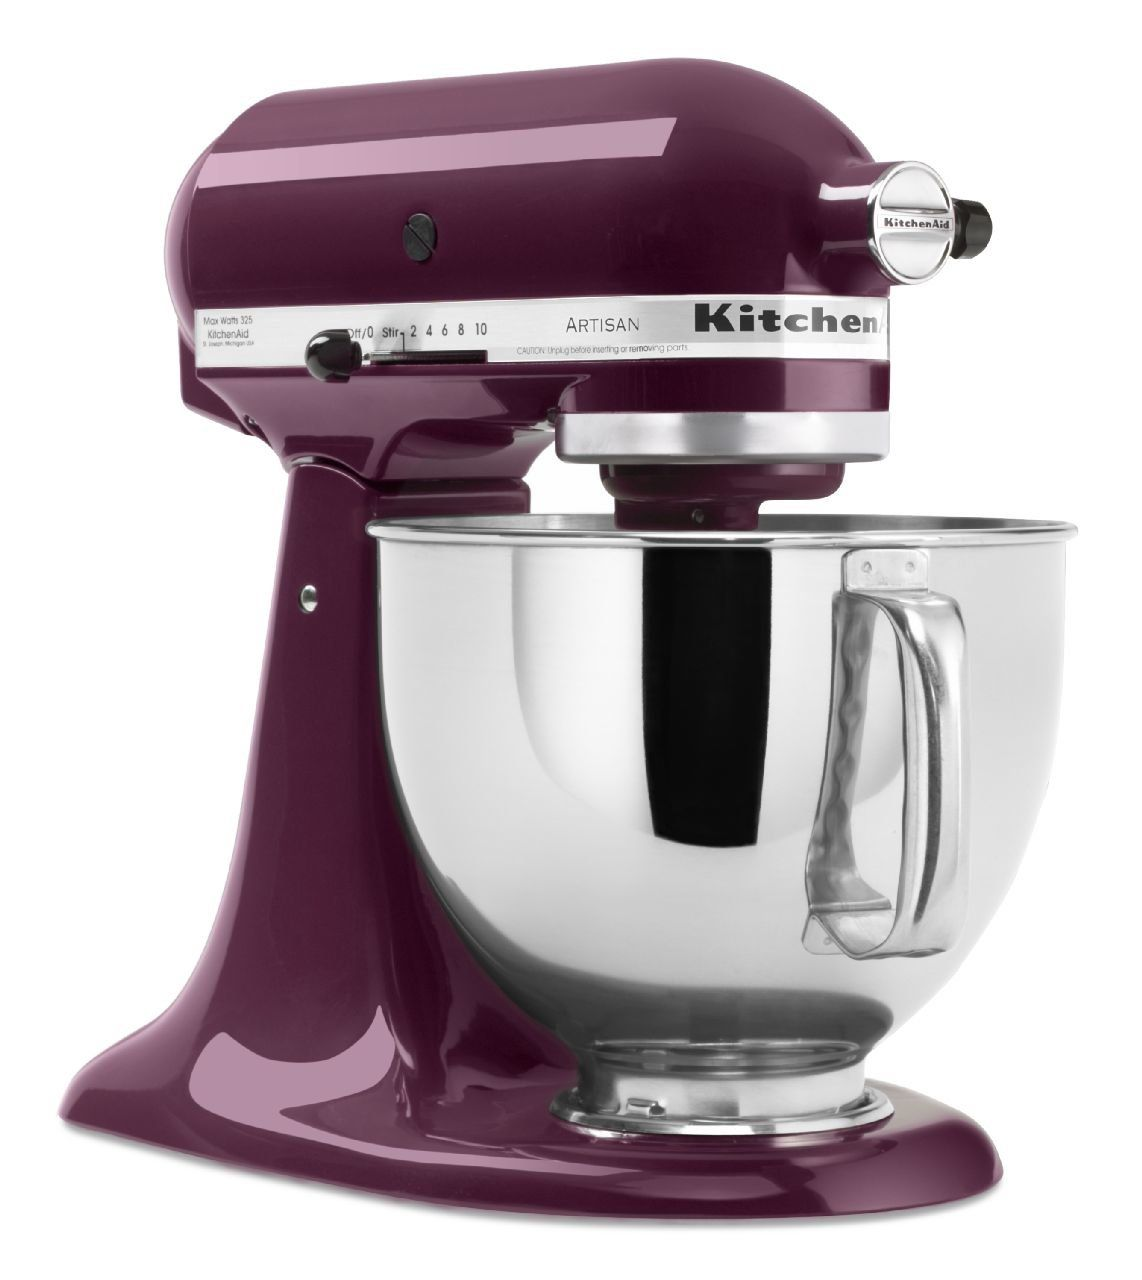 Kitchenaid Artisan Series 5 Qt Stand Mixer With Pouring Shield